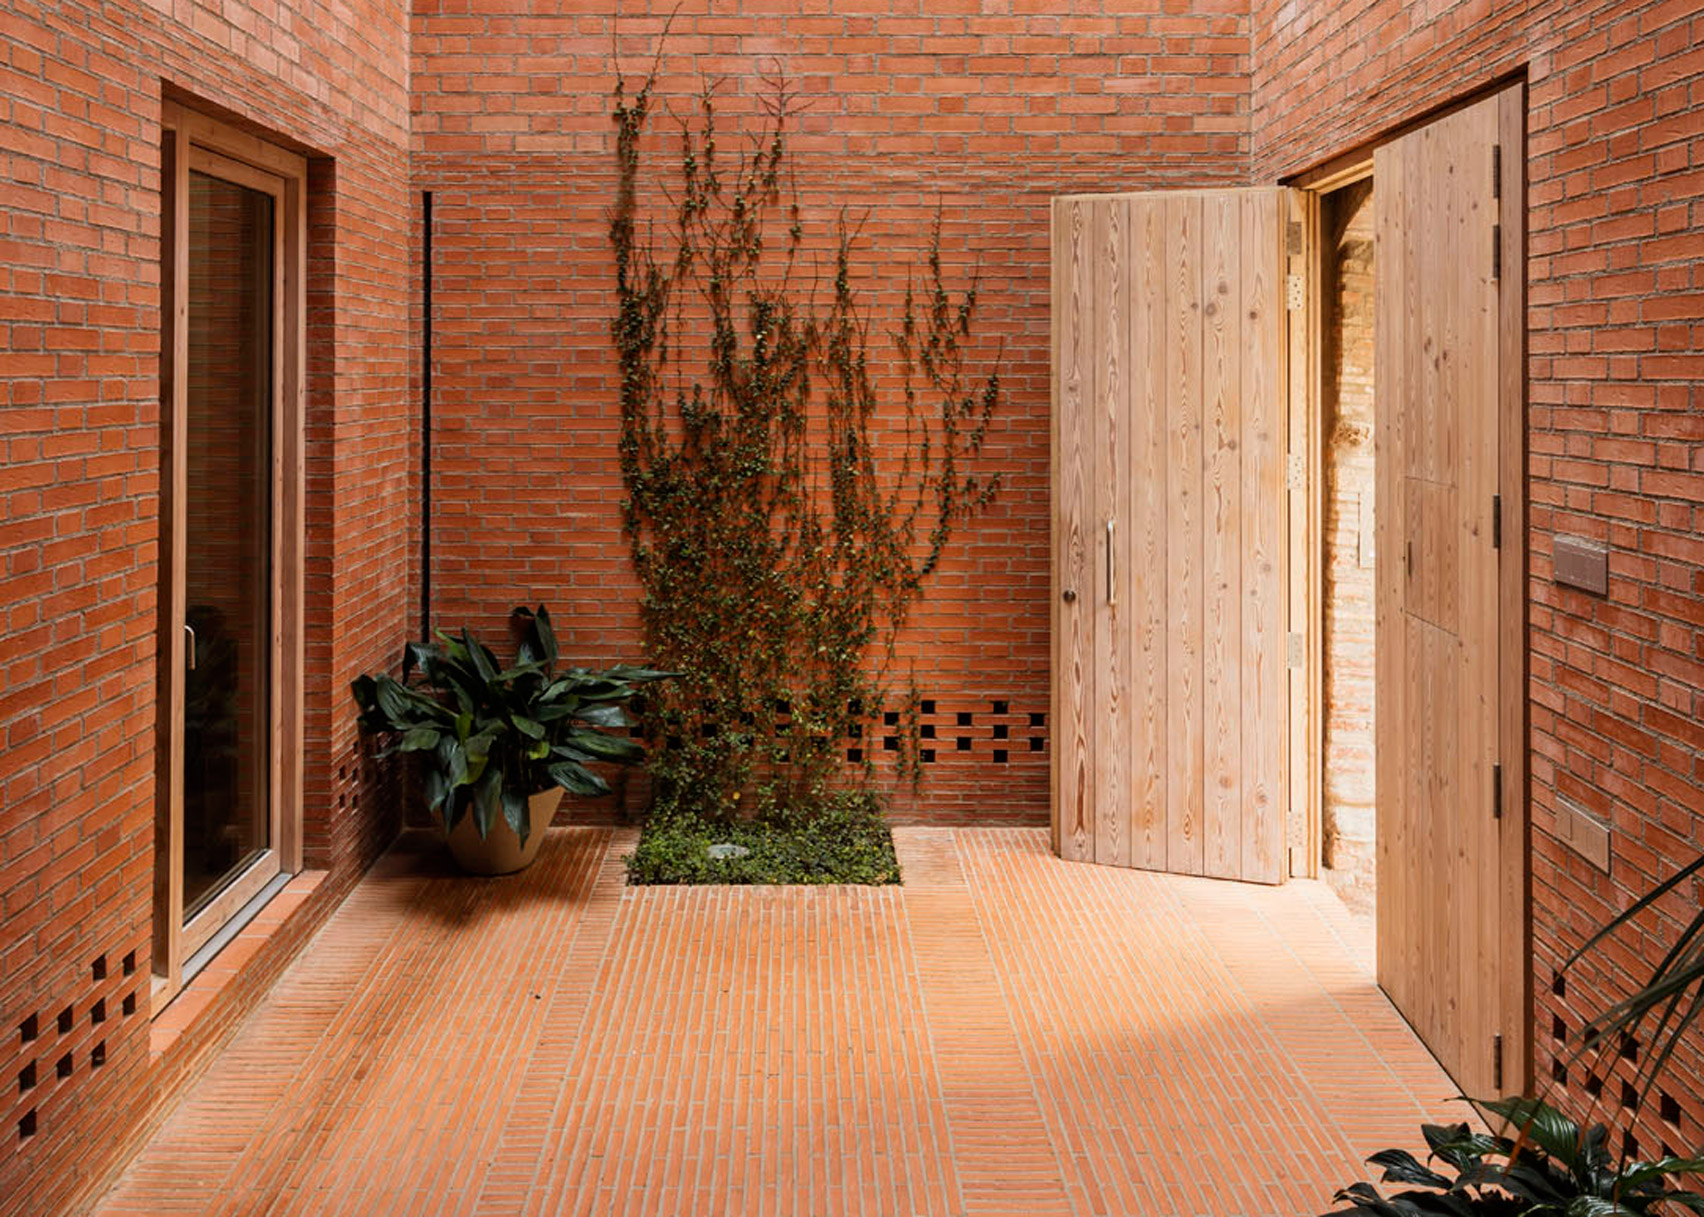 House 1014, Granollers, Spain, by H Arquitectes